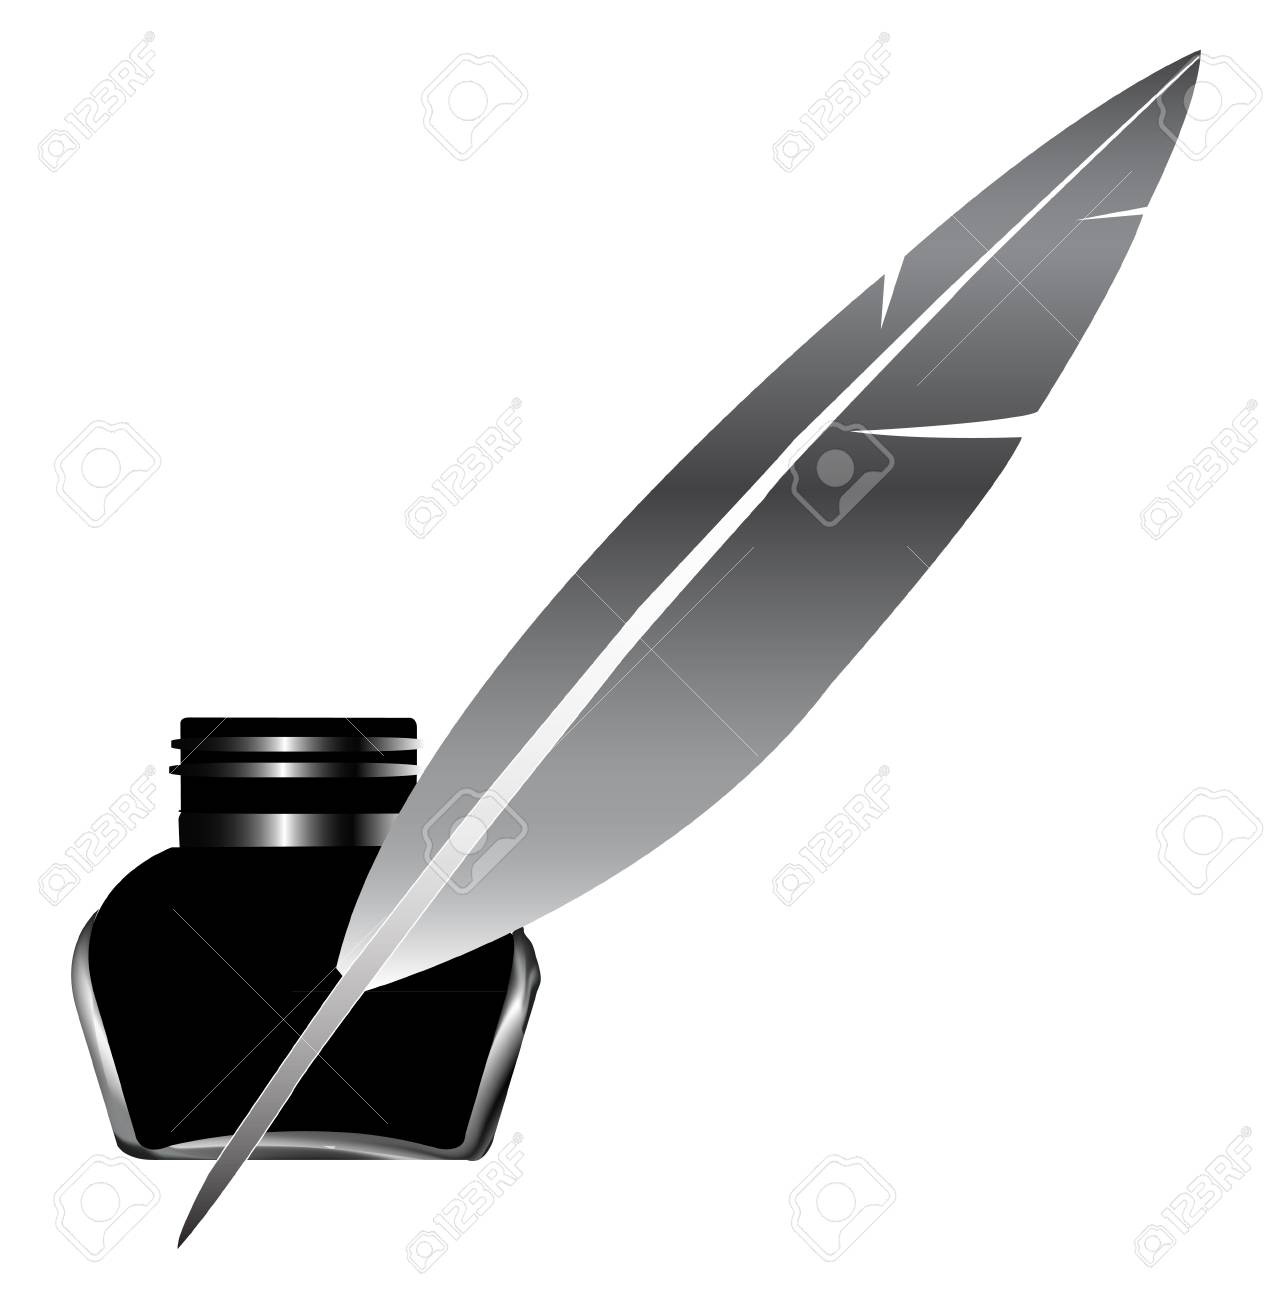 Quill Pen Inkwell - 26027581